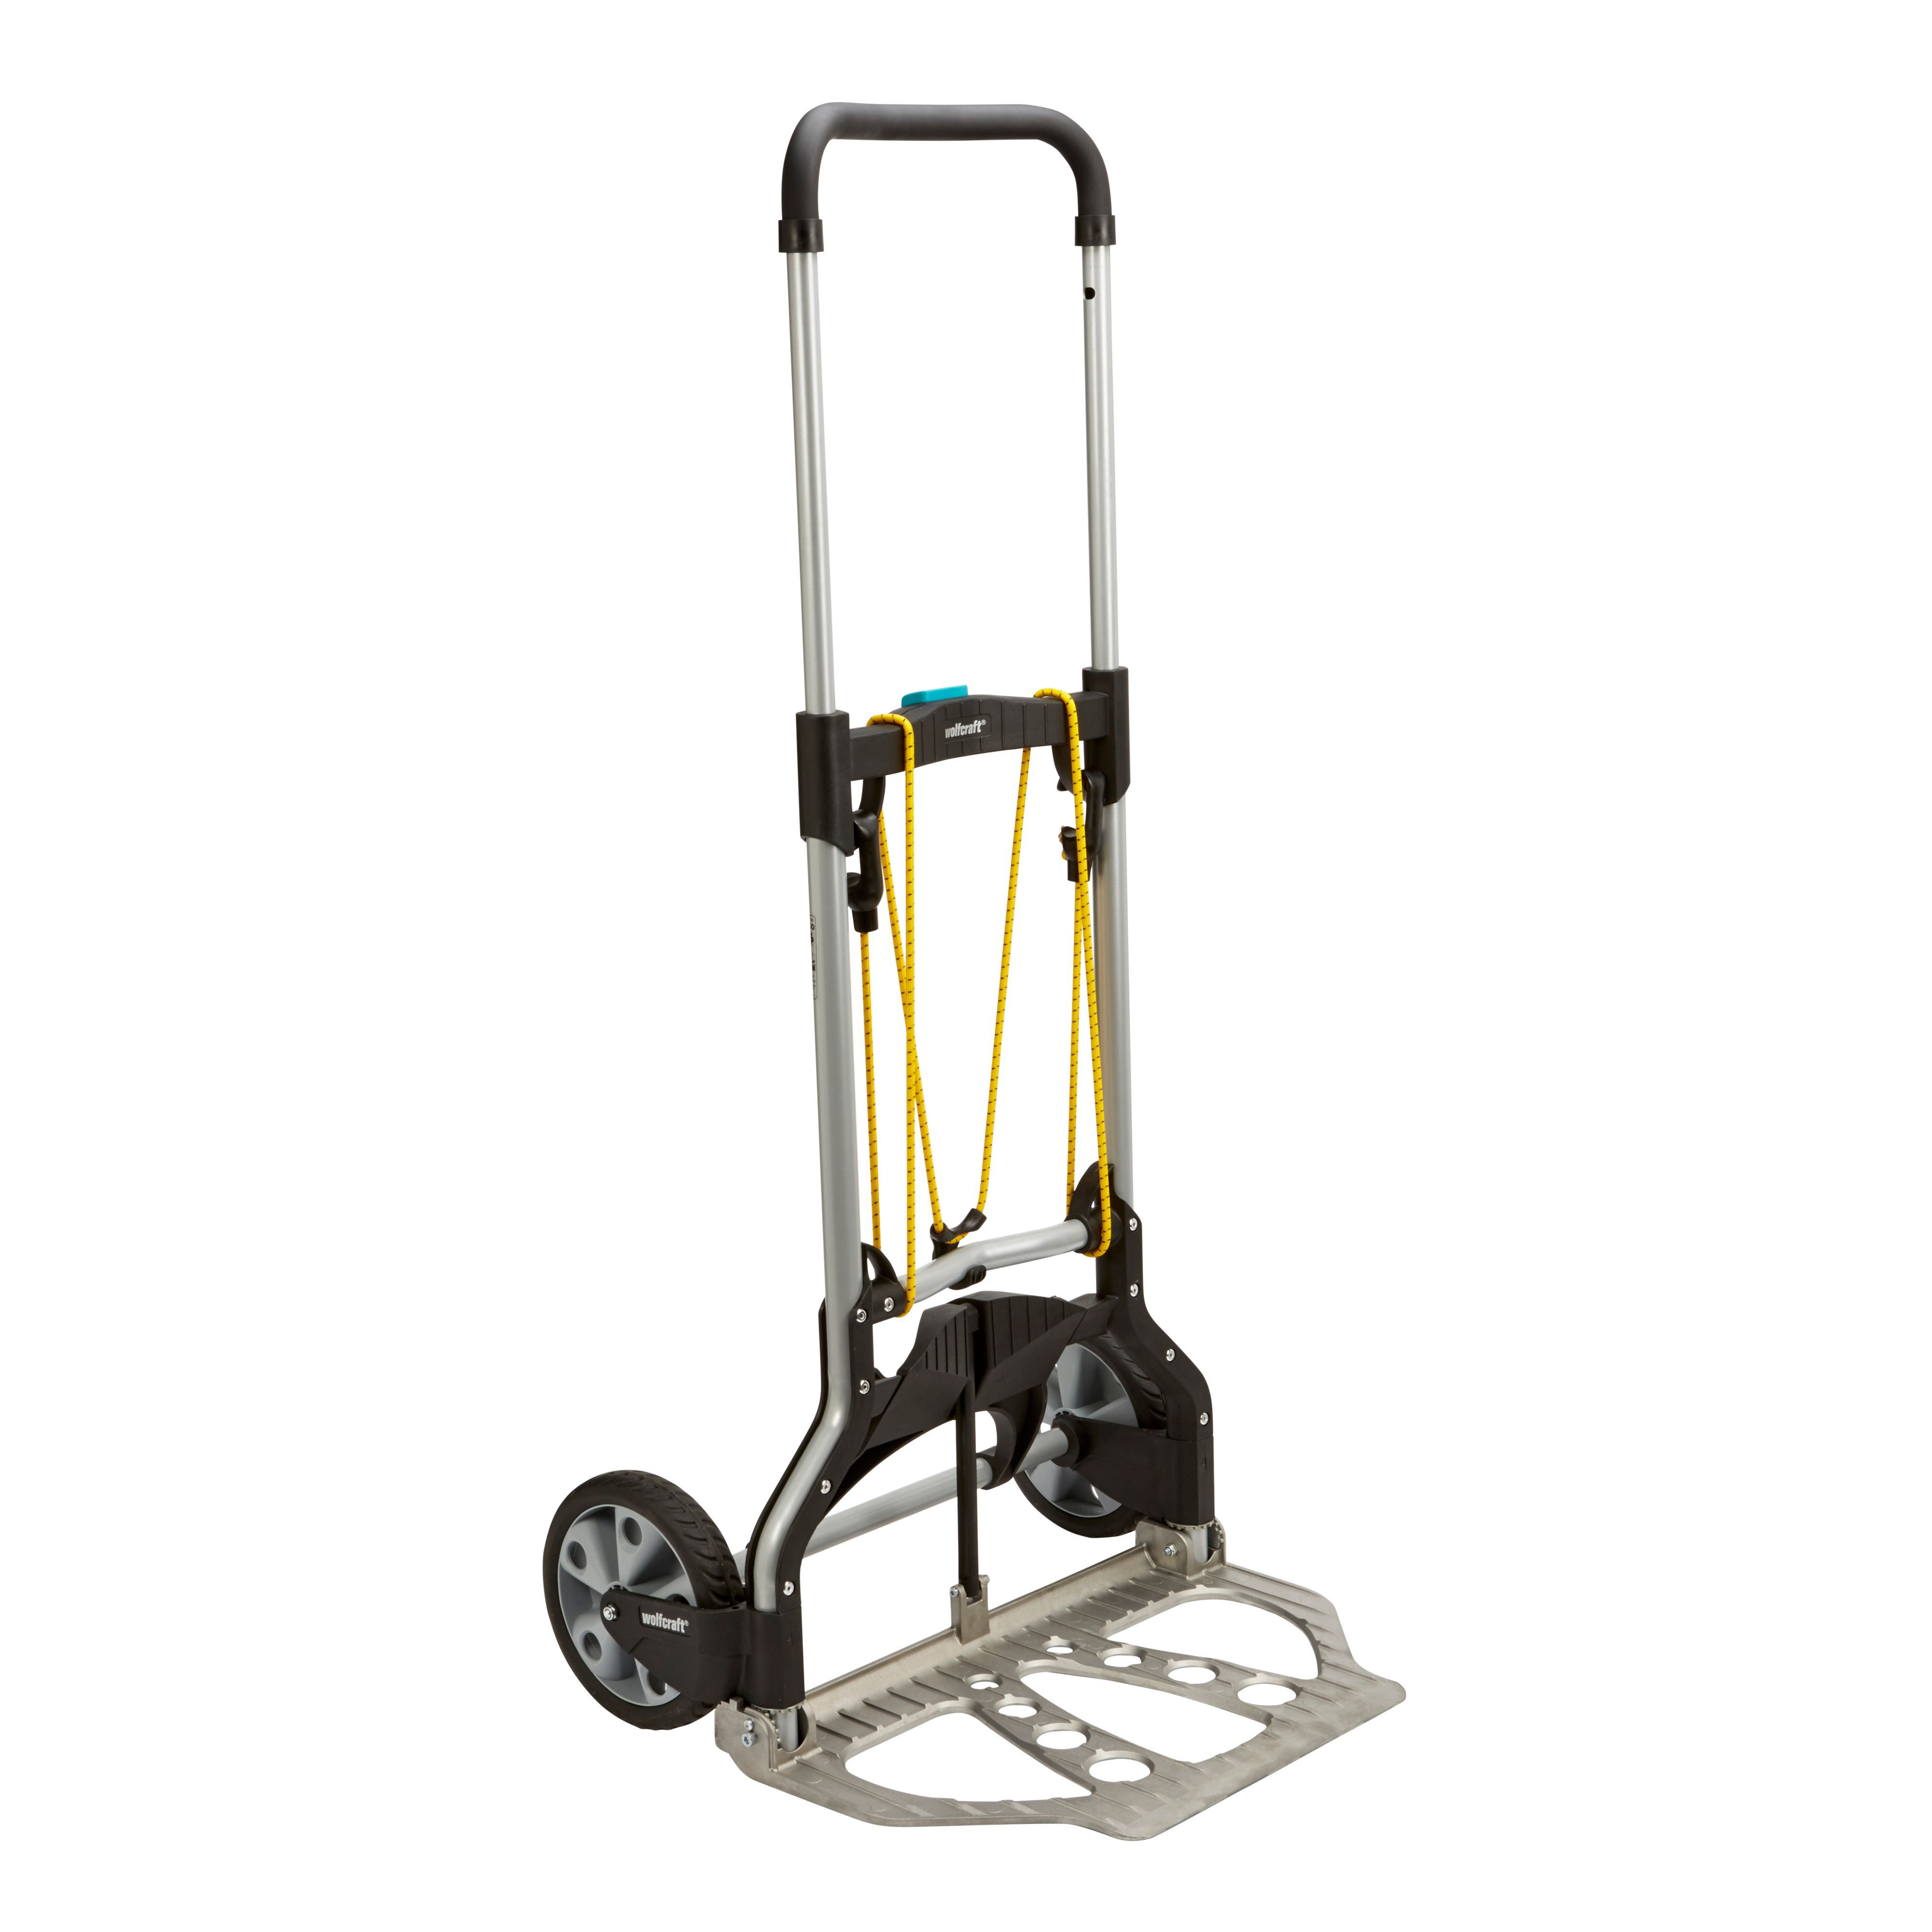 Wolfcraft Heavy Duty Foldable Hand Truck Max Weight